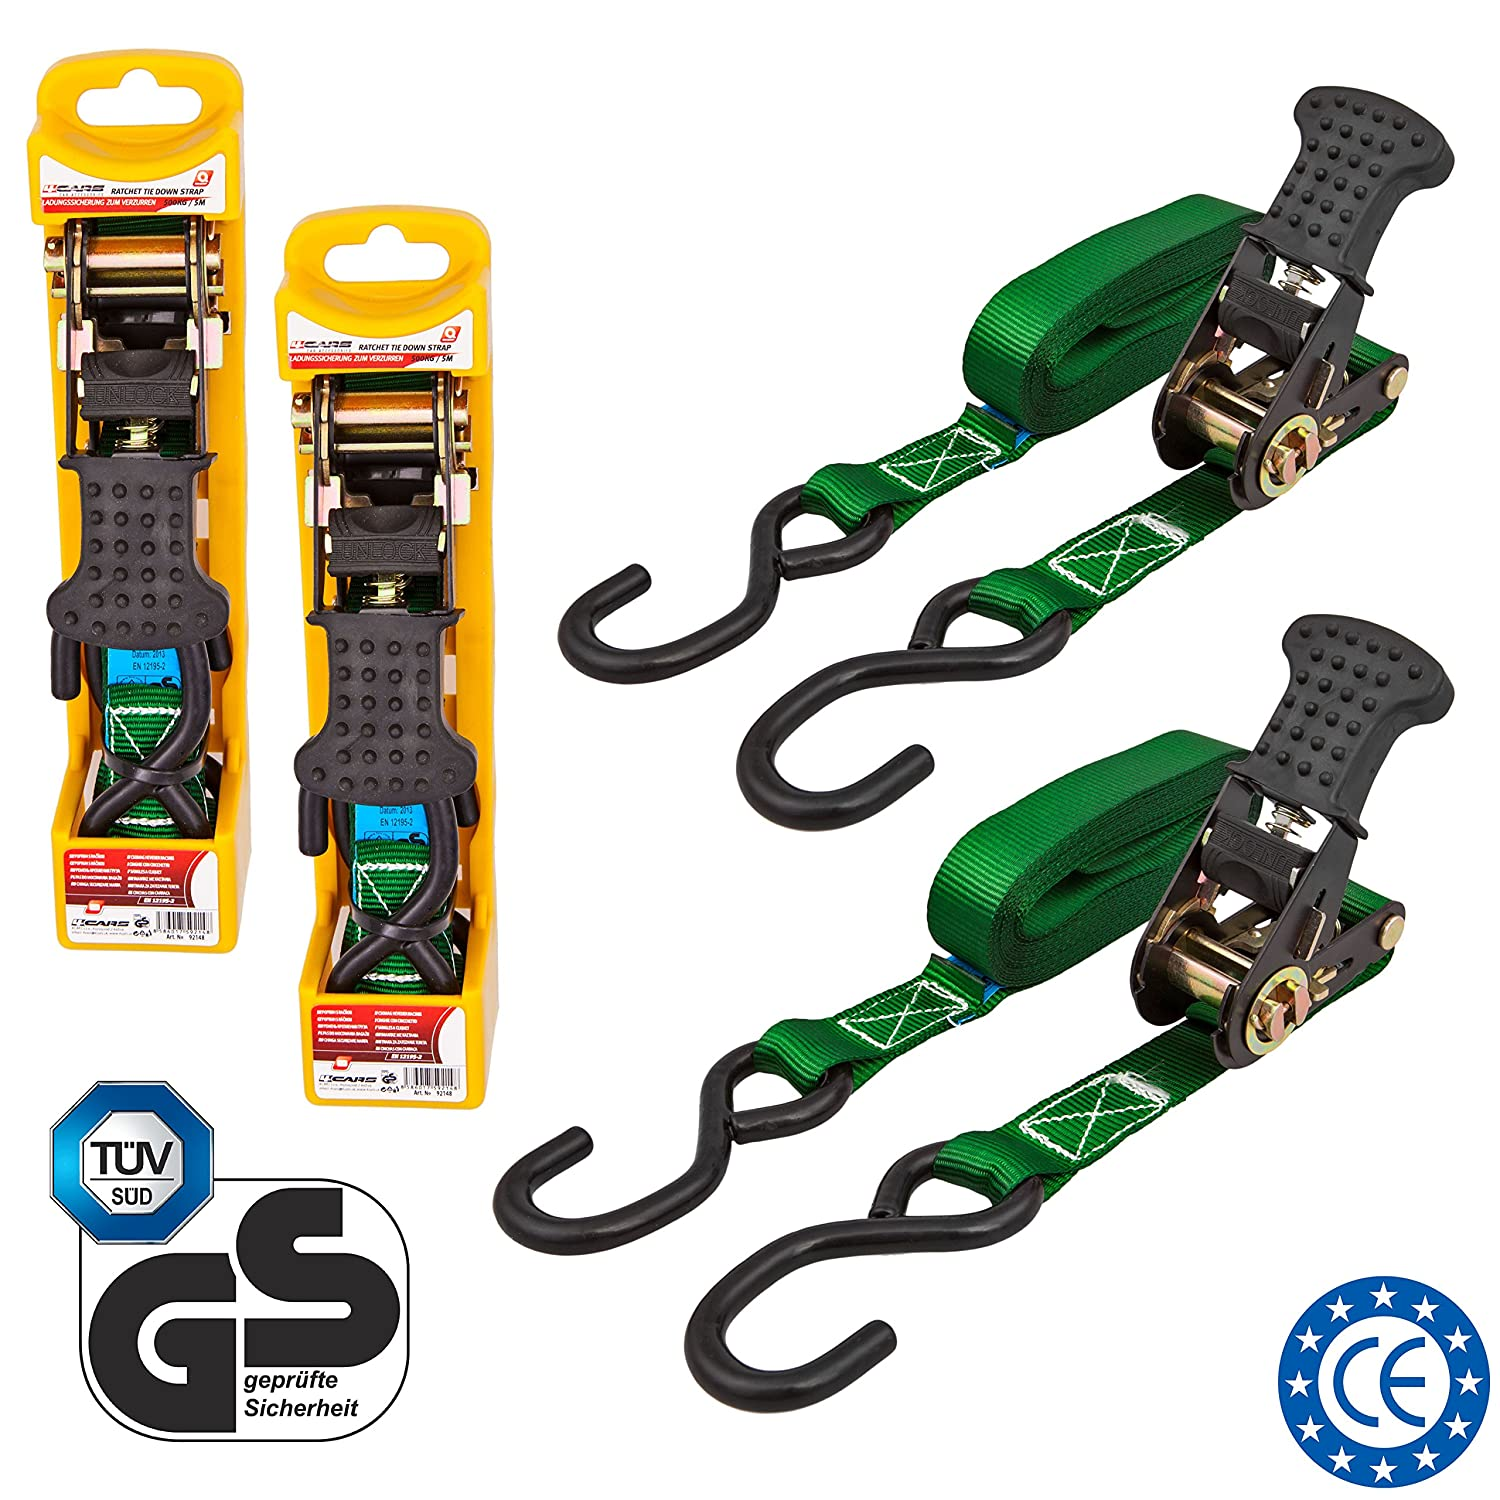 Tie-Down Ratchet Strap with S-Hooks rated for 150 kg 5 meters 16.4 ft wide 25 mm 1 inch long 4CARS 2-pack set